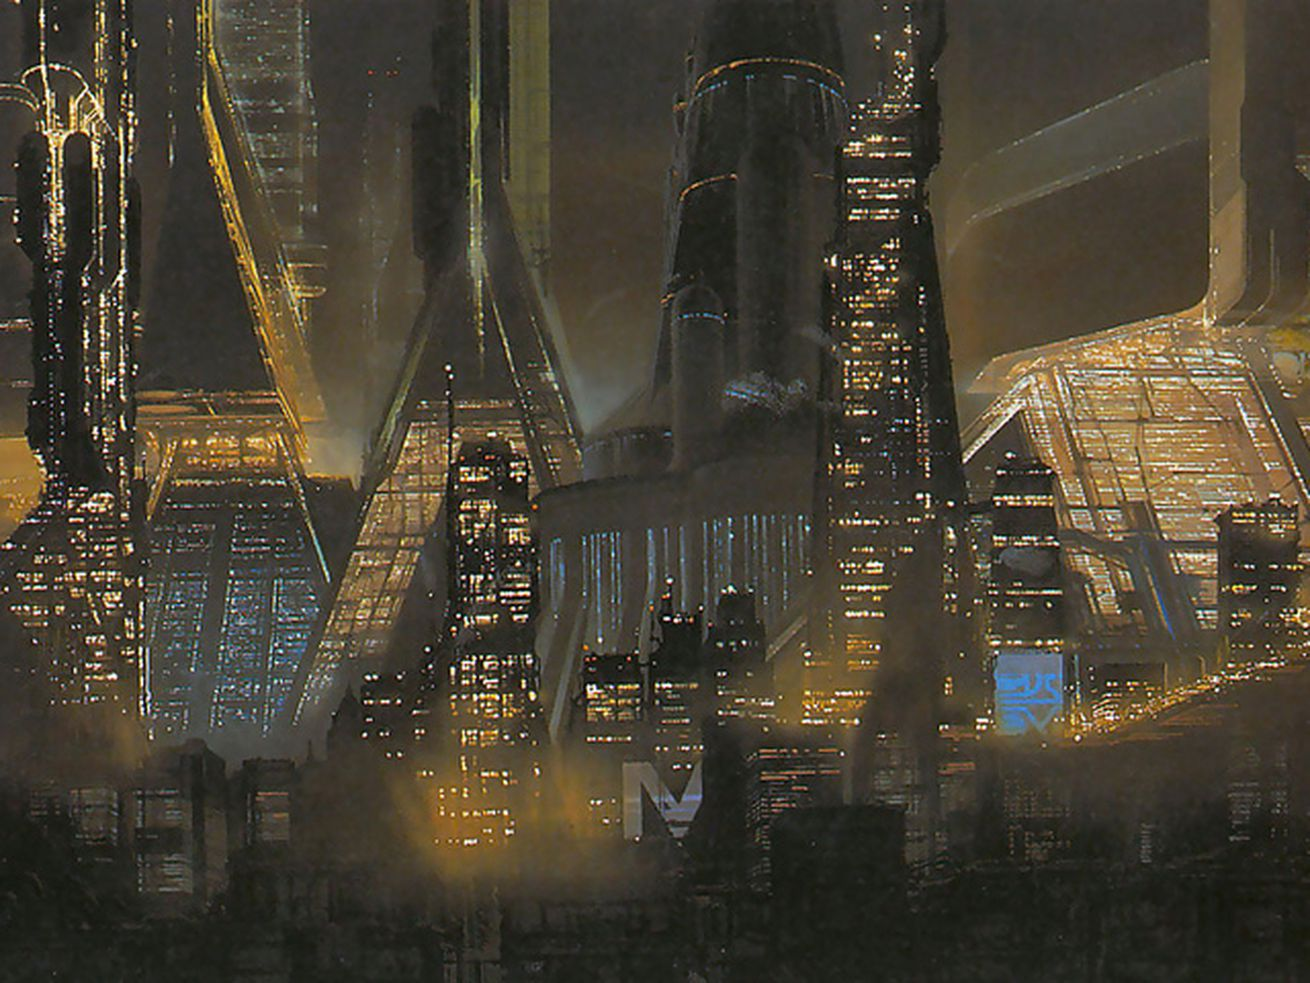 Goodbye Syd Mead: A conversation with the artist who illustrated the urban future